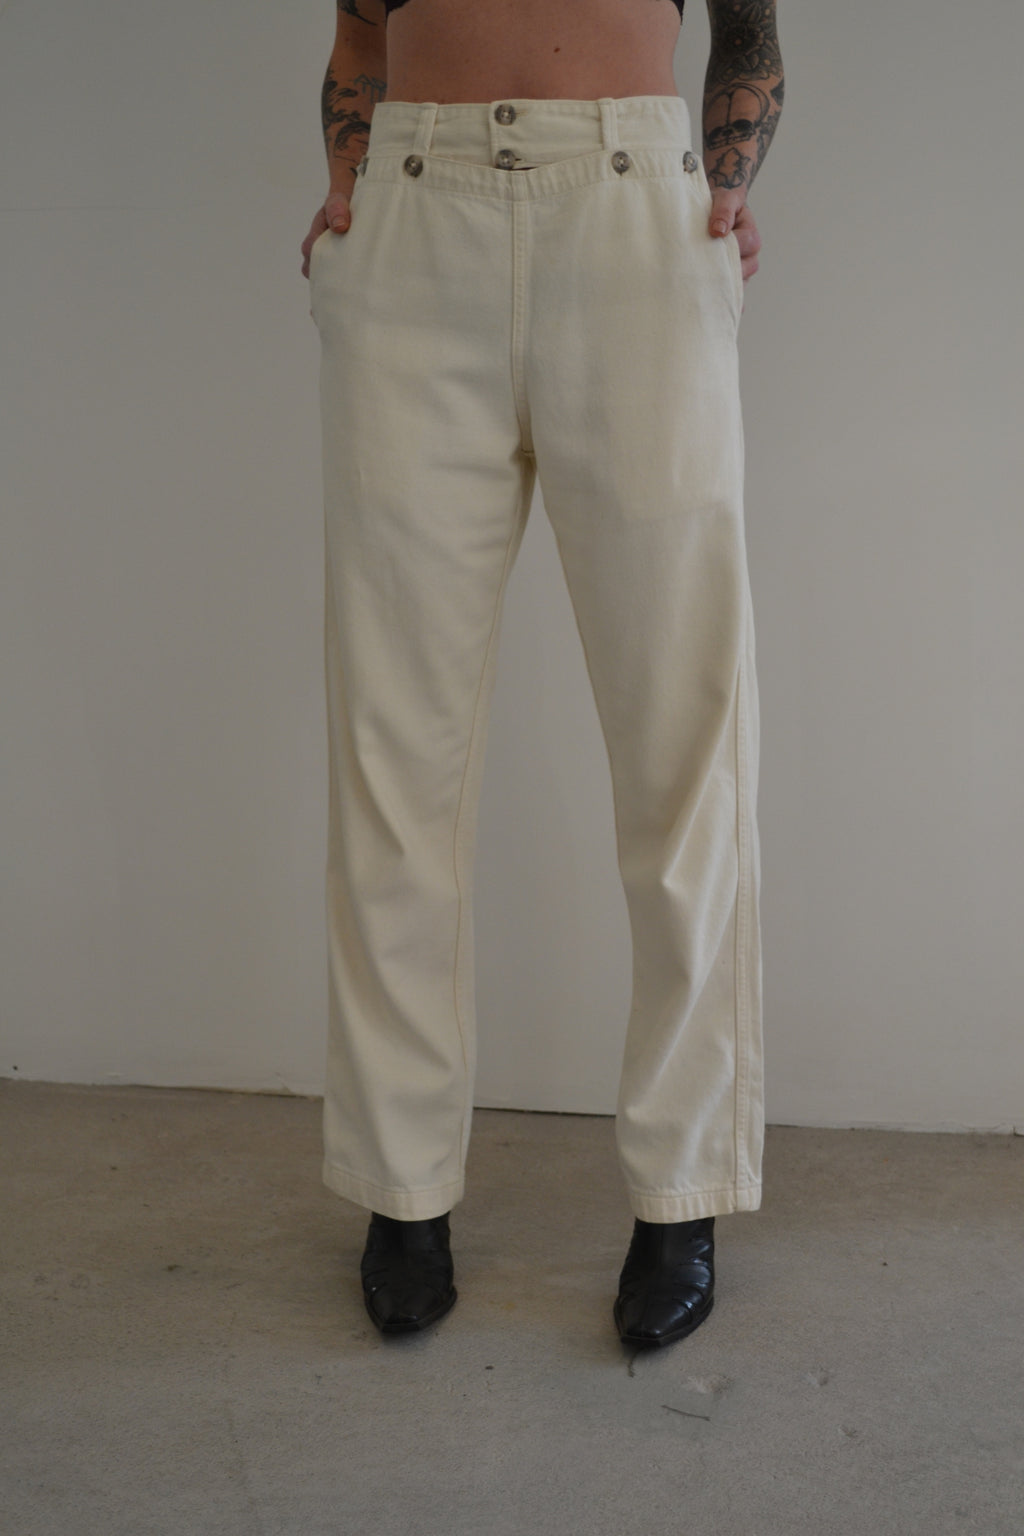 High Waisted Ivory Wide Leg Trousers FREE SHIPPING TO THE U.S.